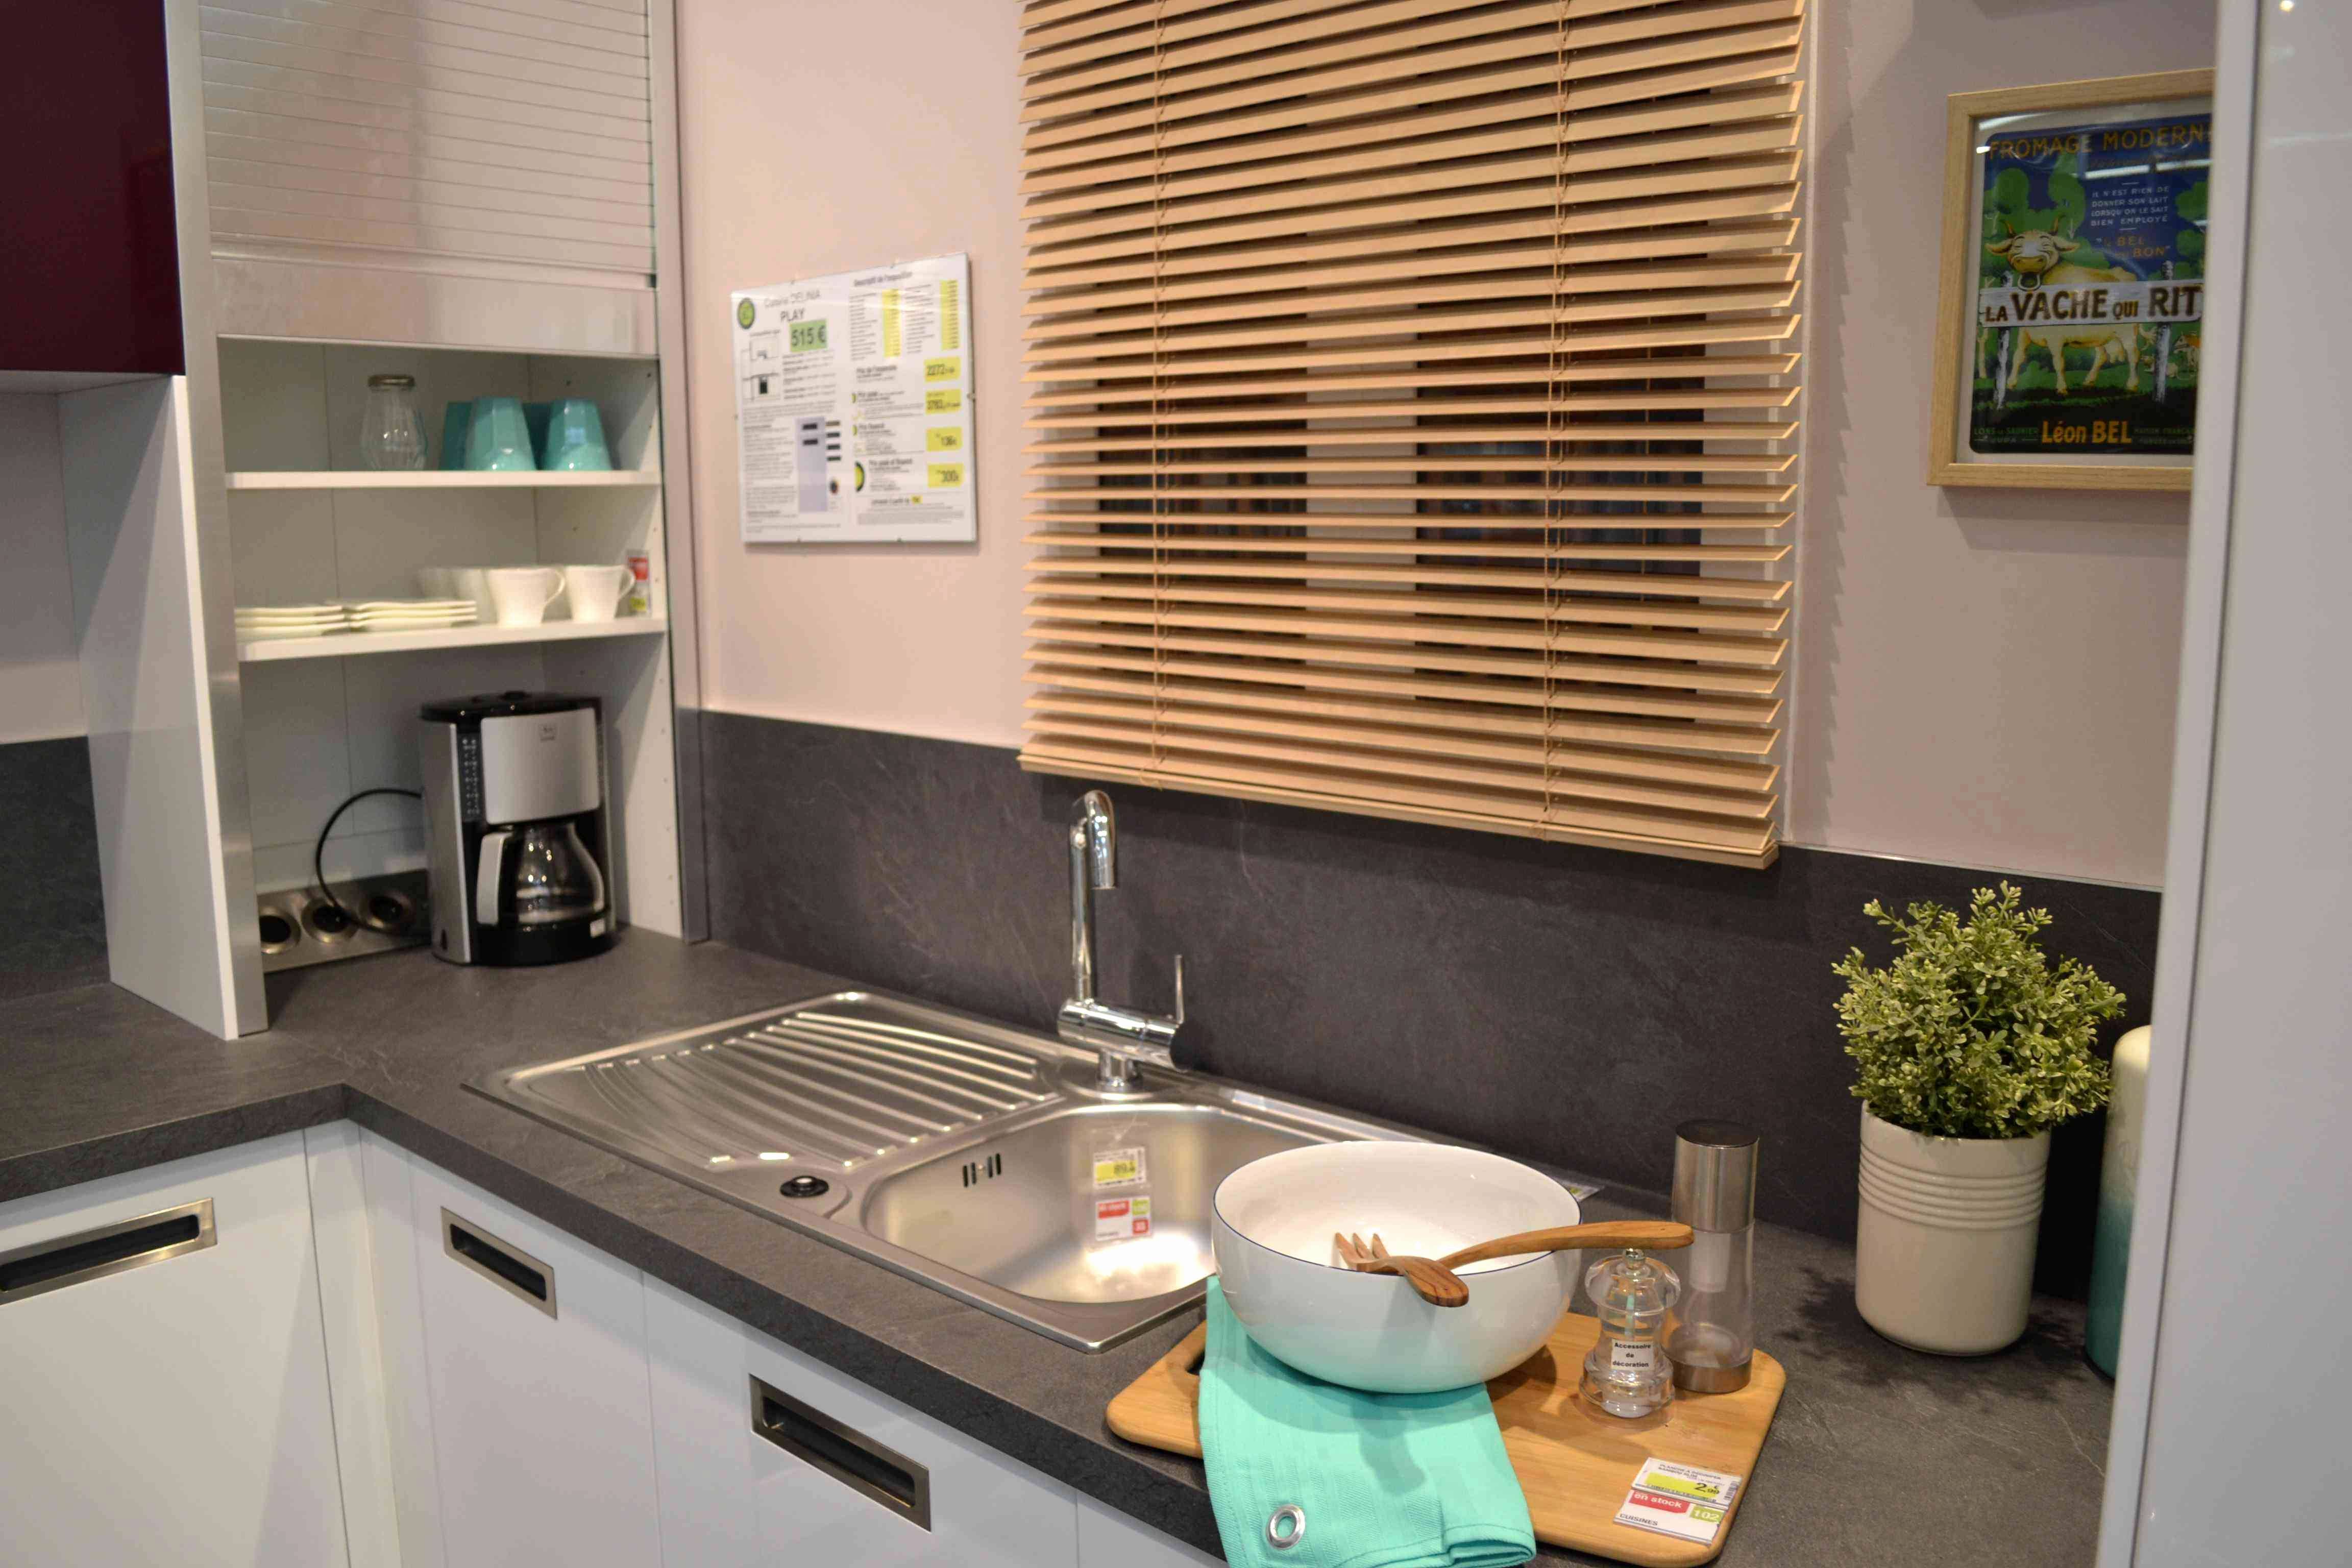 Cuisine Leroy Merlin Delinia Luxe Images Cuisine Chez Leroy Merlin Frais Cuisines but Beau H Sink Everything